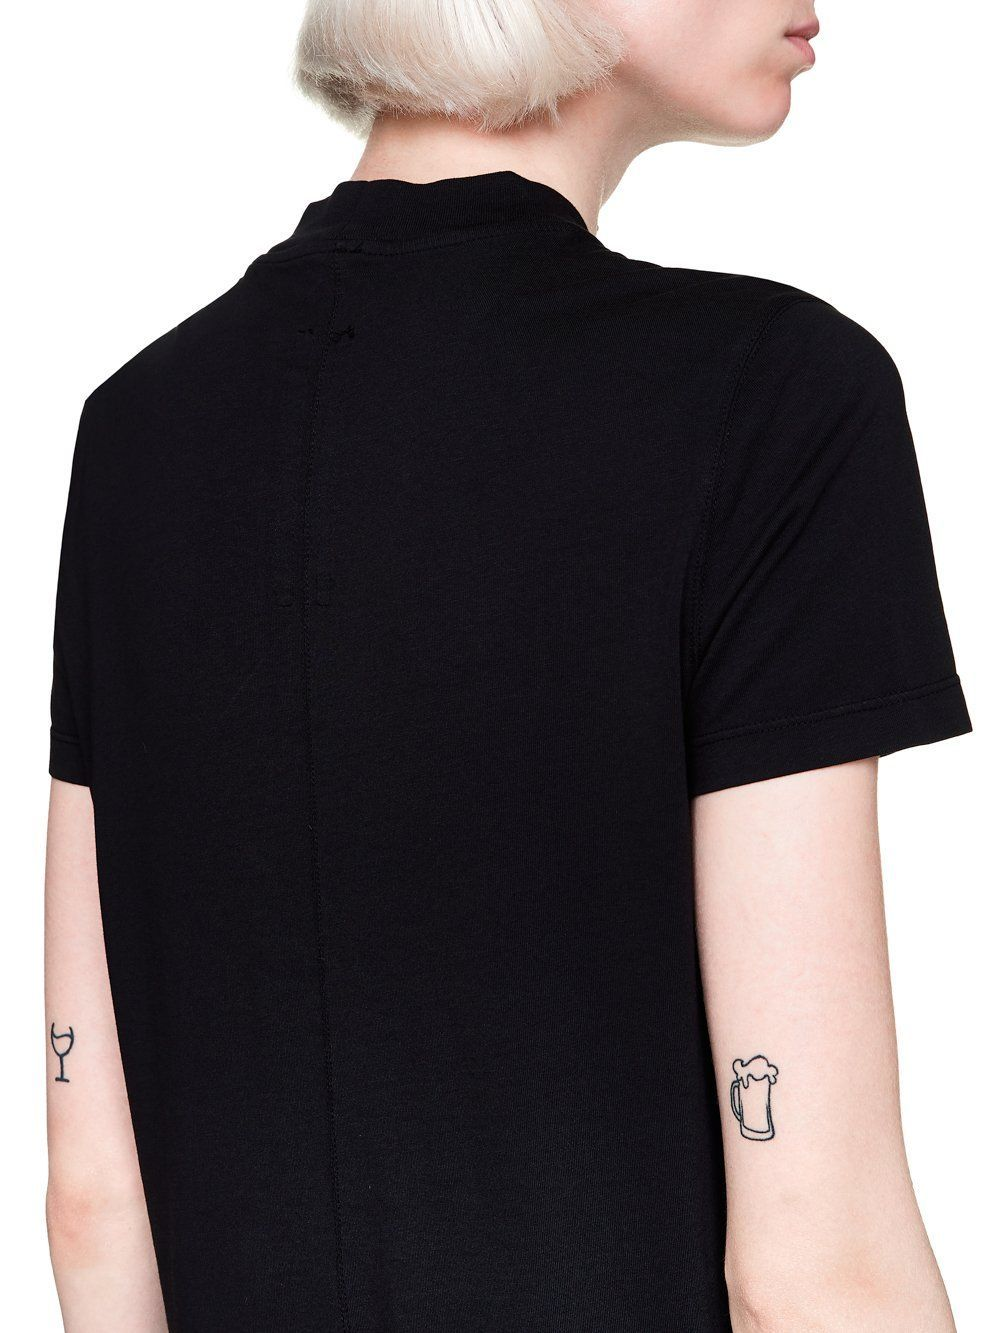 DRKSHDW BY RICK OWENS WOMEN'S DS19F6205RNEP30921 BLACK COTTON T-SHIRT